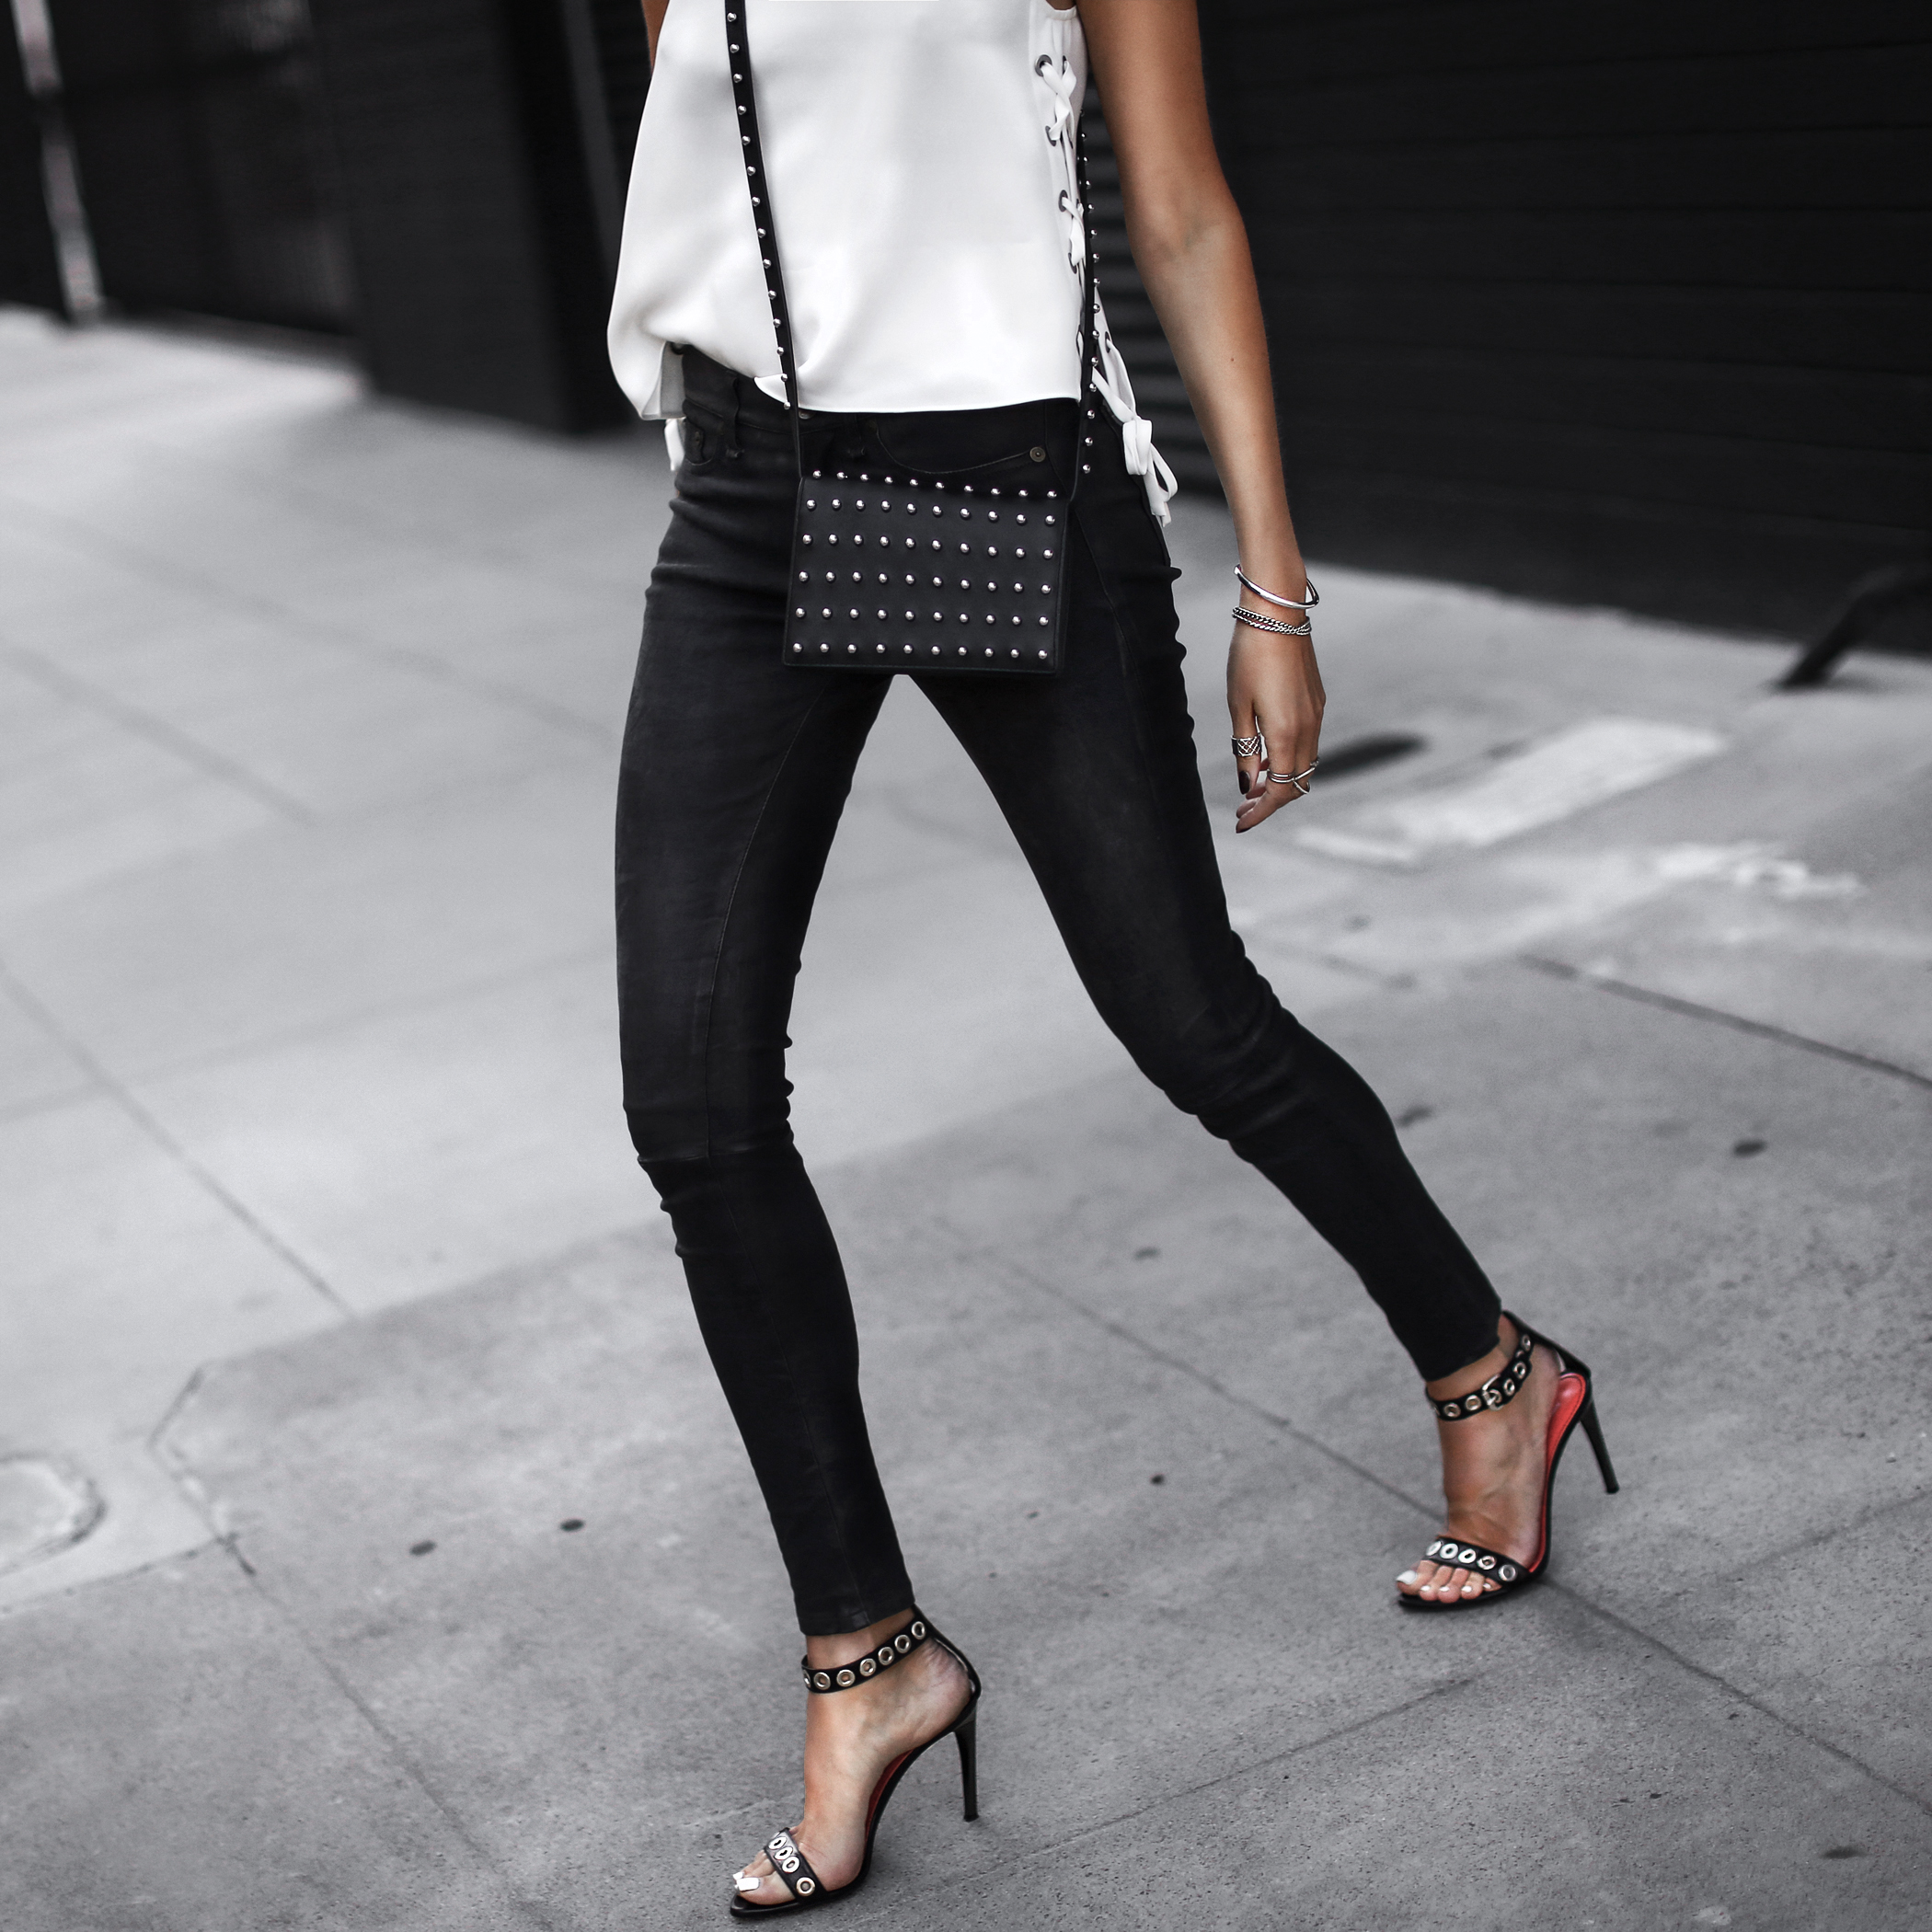 lace-up tank top, black leather pants, studded crossbody bag, black studded sandals